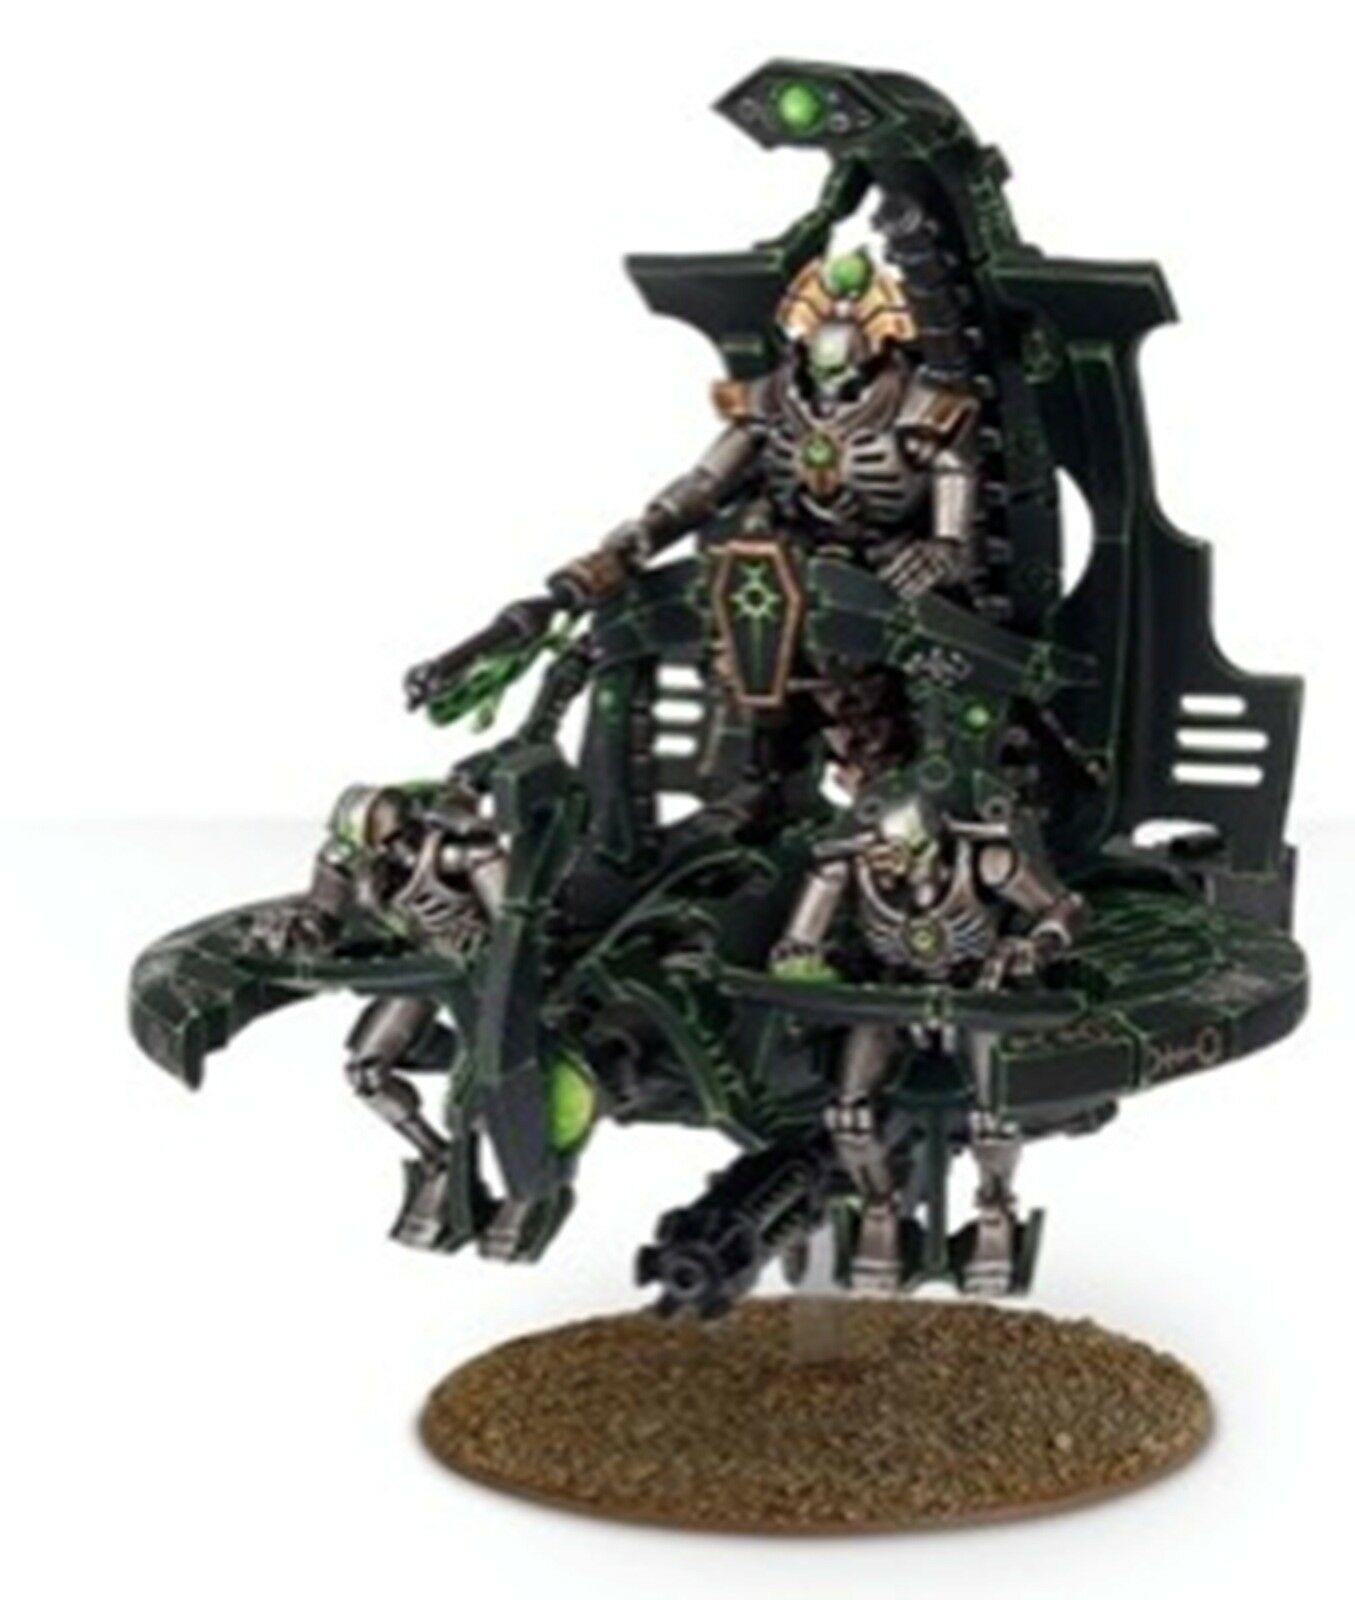 NEW WARHAMMER 40K NECRON CATACOMB COMMAND BARGE ANNIHILATION BARGE GW-NEC-4912